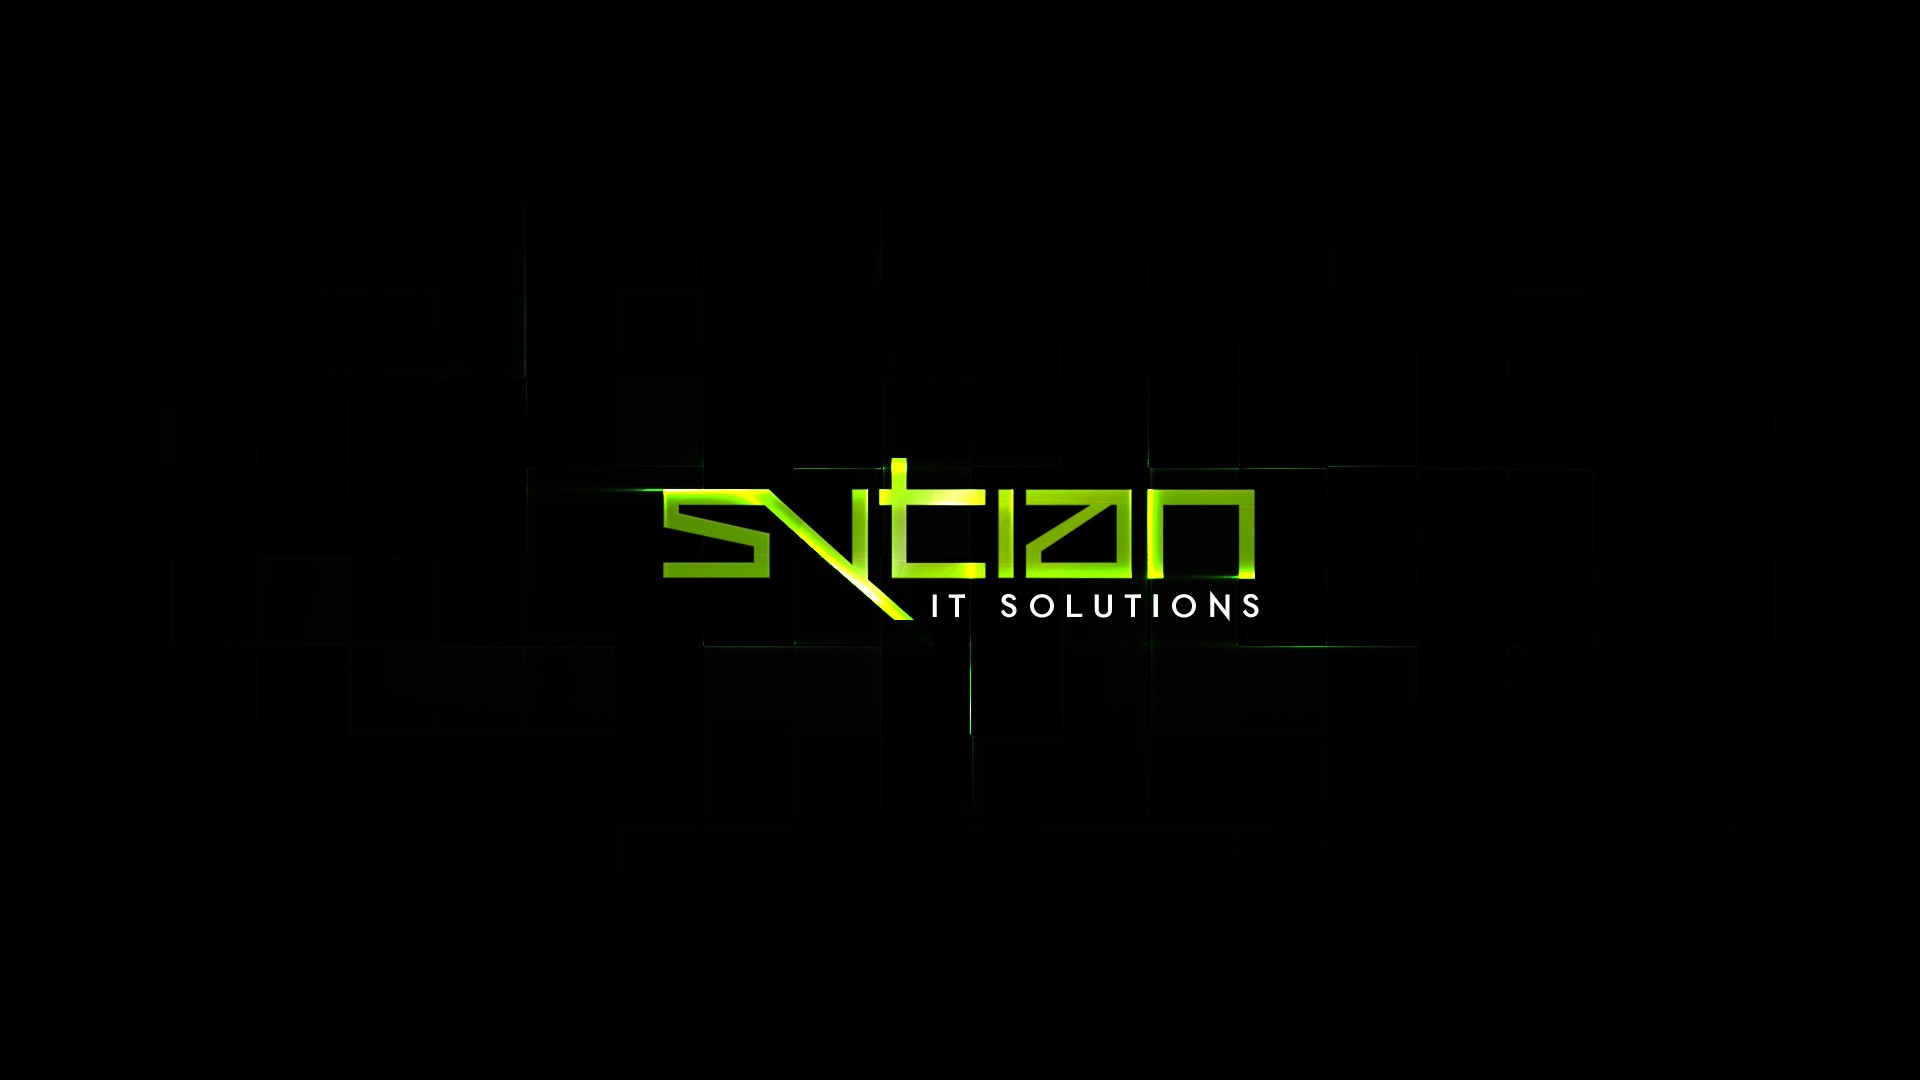 Sytian IT Solutions